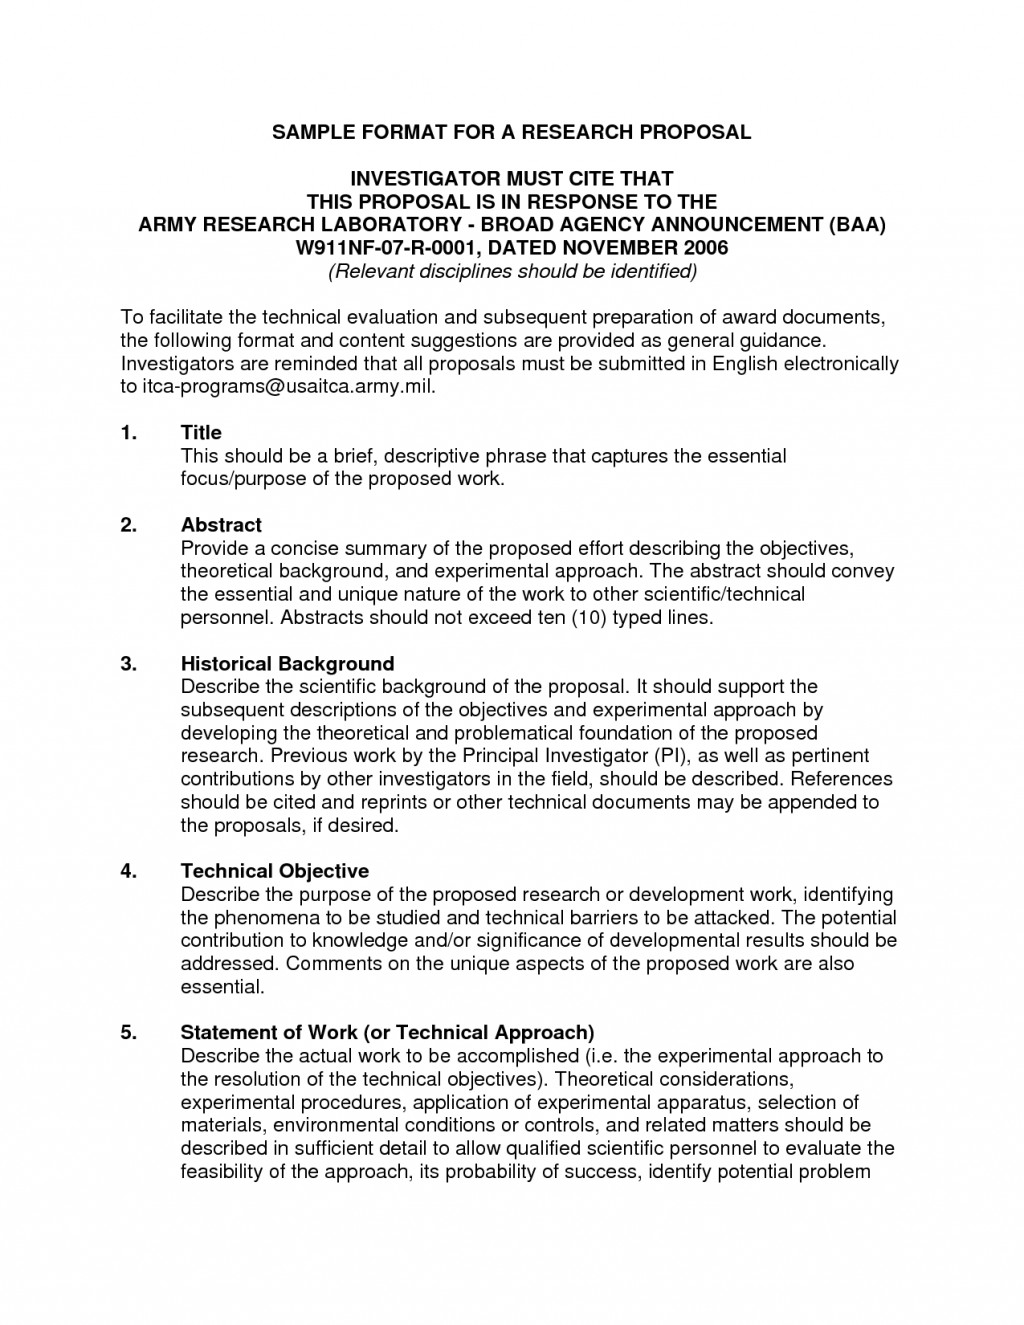 004 Research Proposal Template Qicmwzxw How To Write Abstract For Paper Stirring Ppt Large